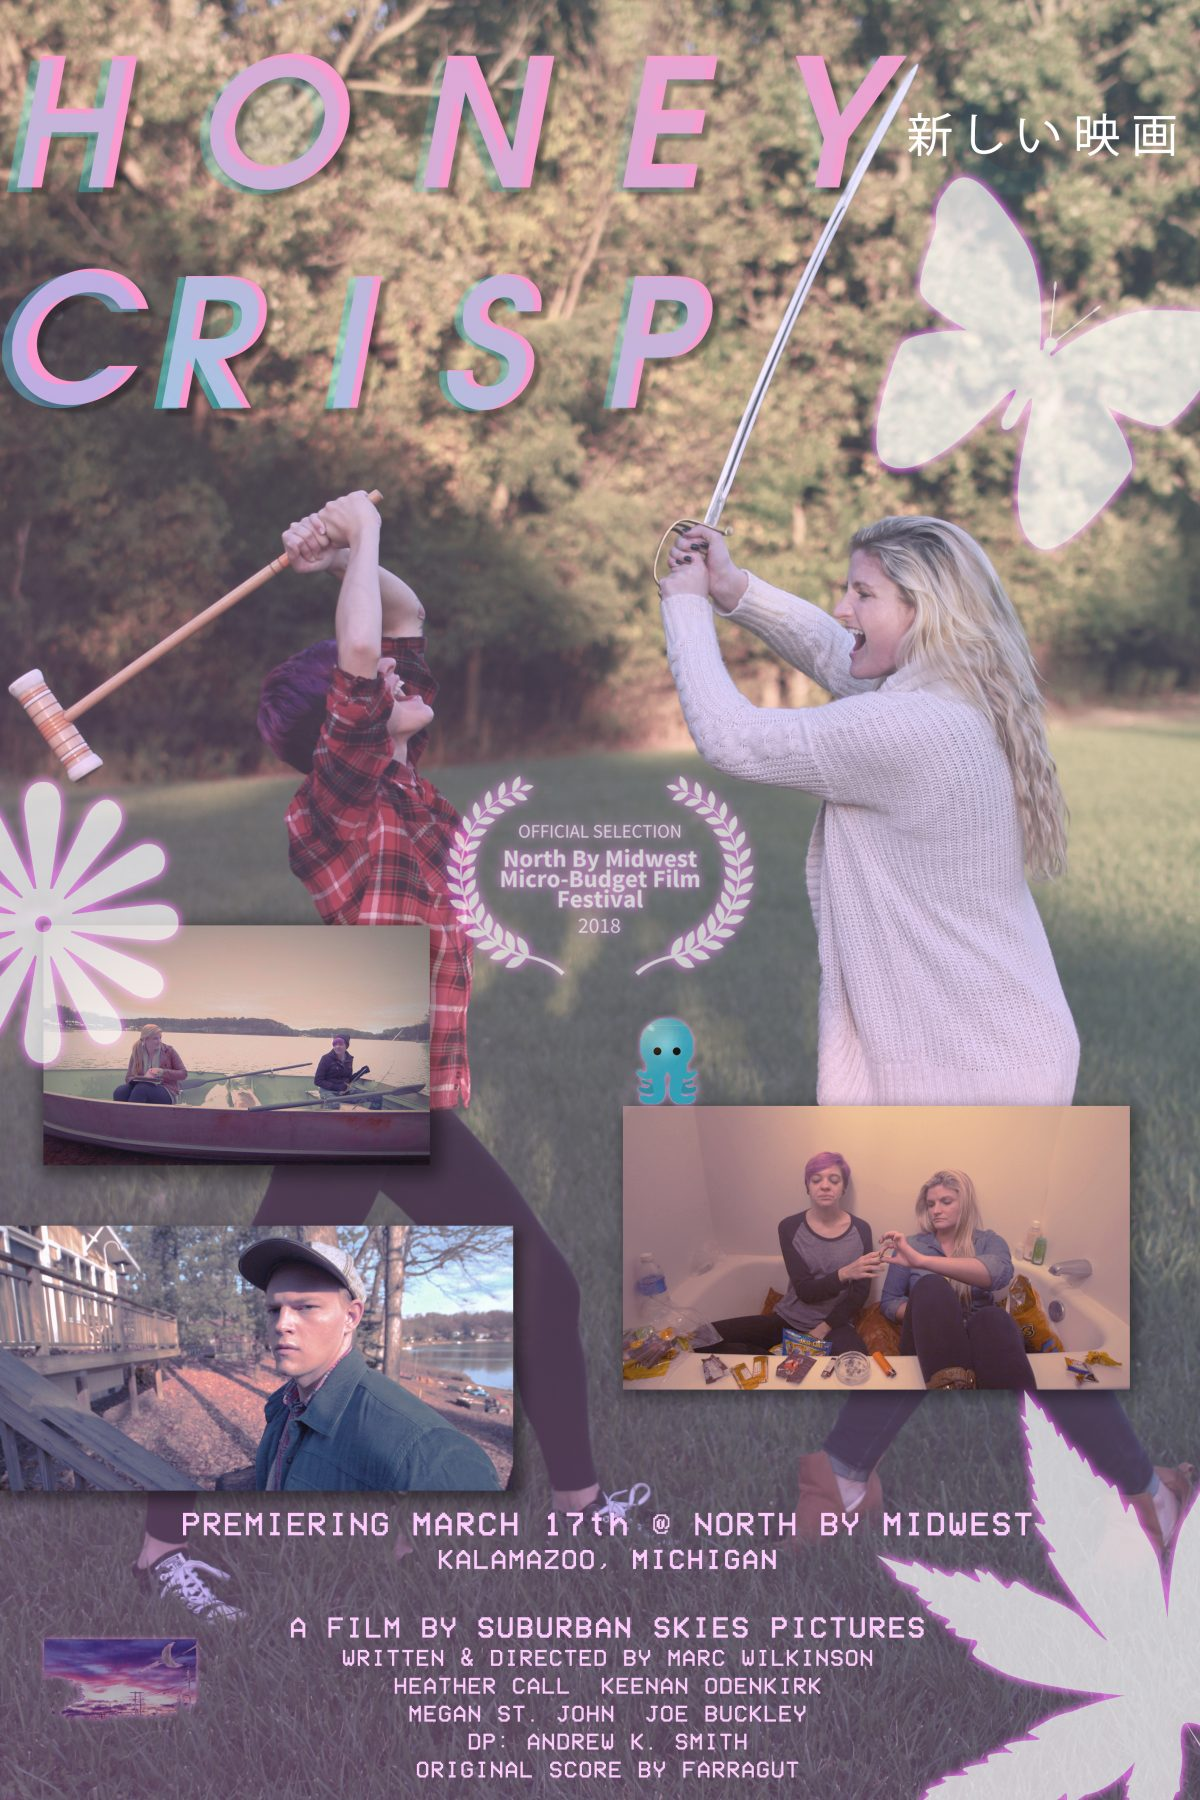 We bring you an exclusive preview/review of Marc Wilkinson's second full-length indie feature, Honeycrisp